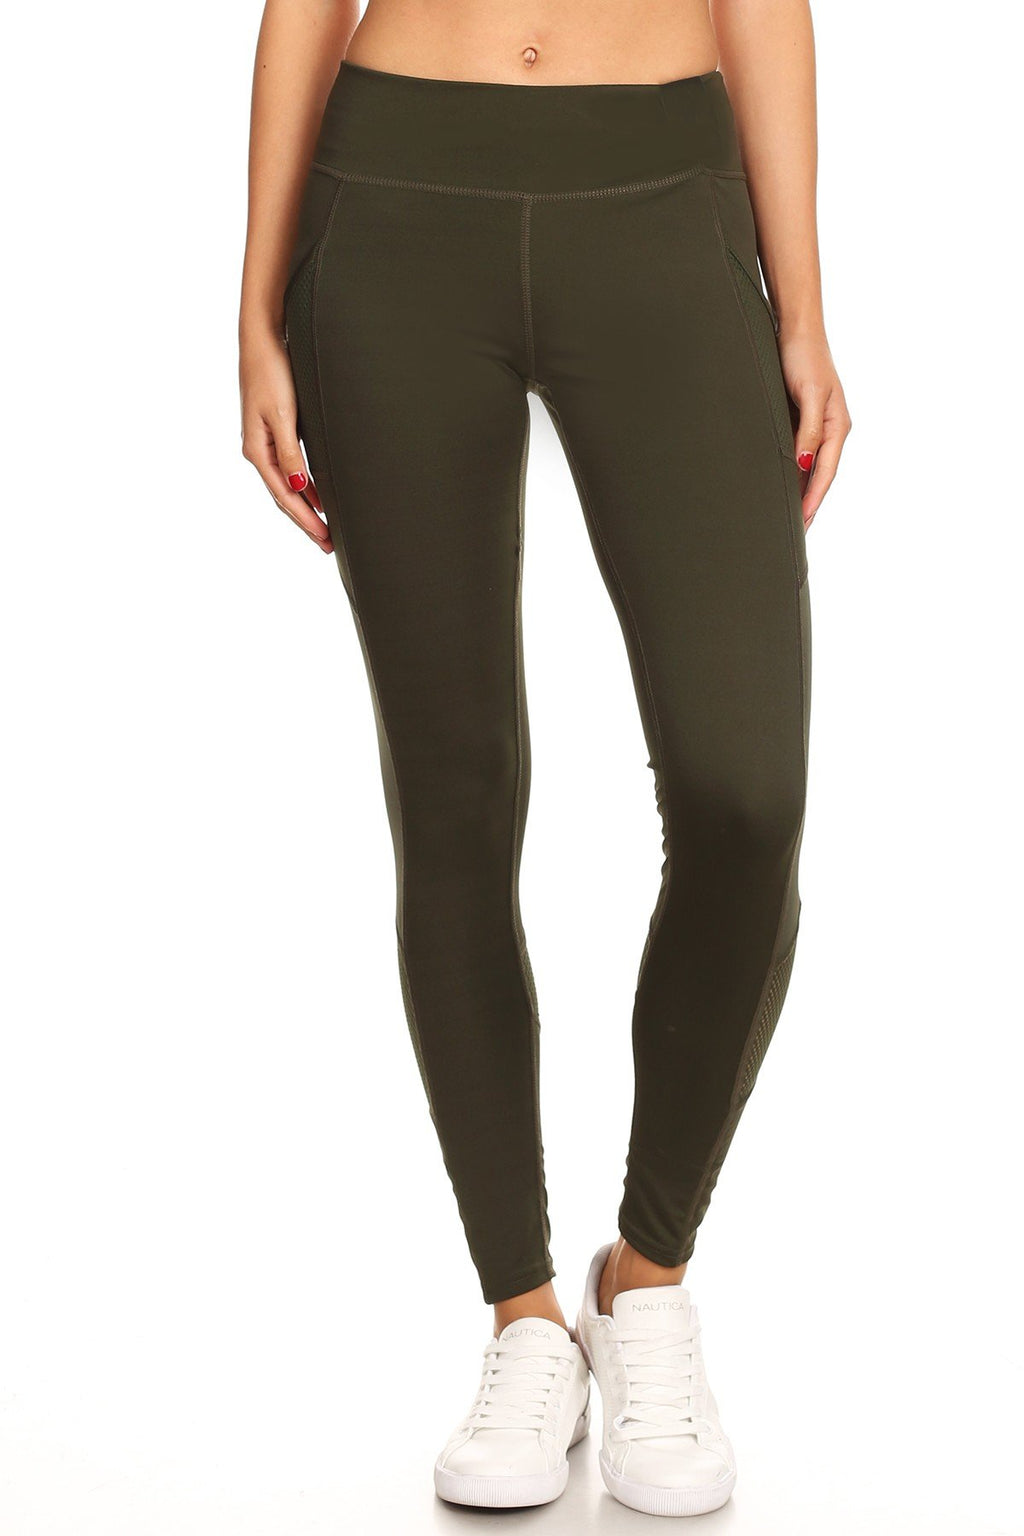 Envy Green Active Leggings Clothing Fair Shade S Grey 95% poly 5% spandex